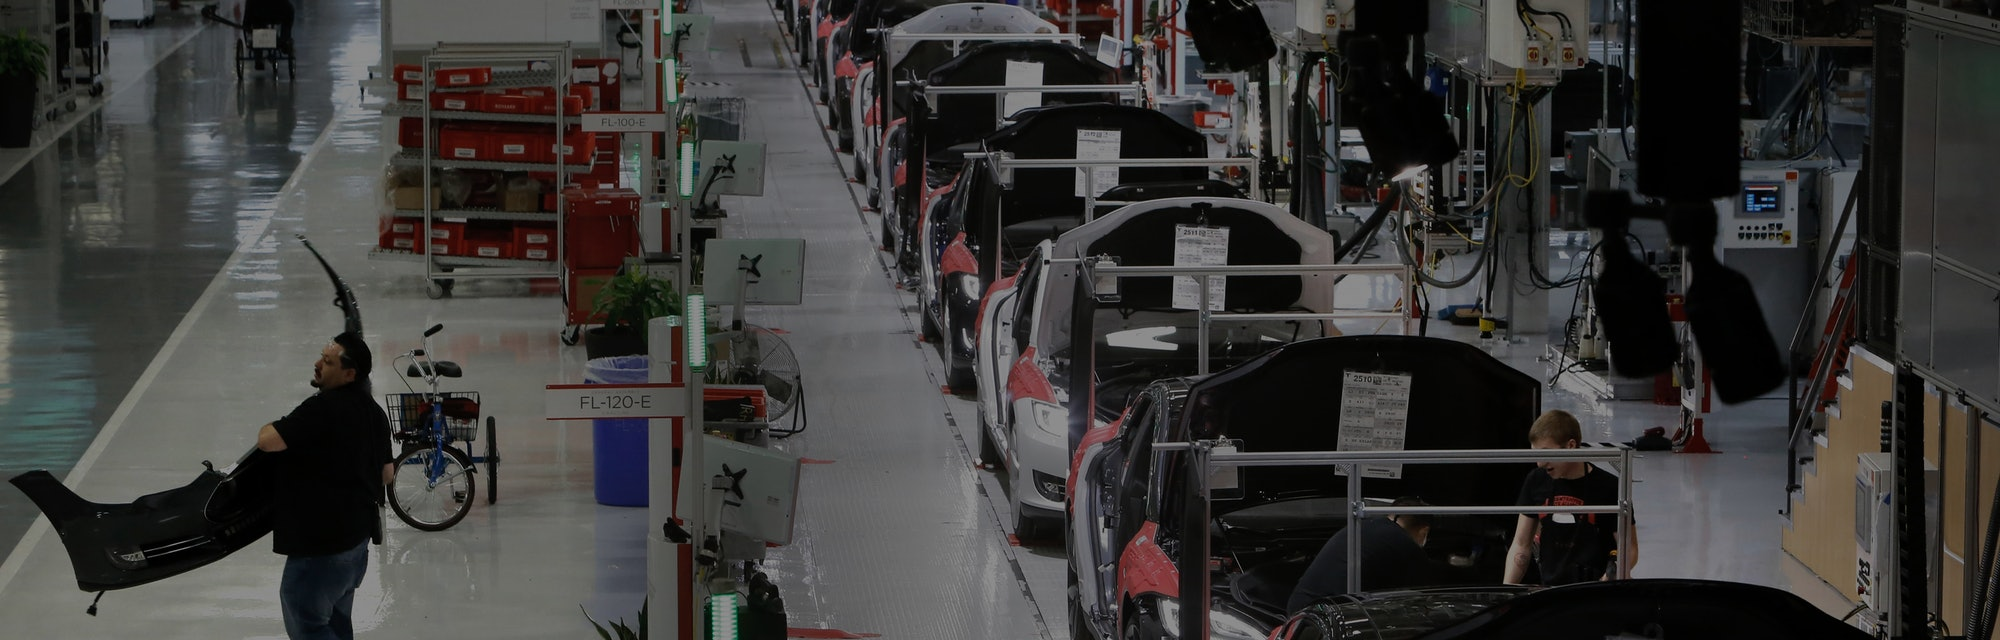 A worker carries a front end part along the assembly at Tesla Motors, California's only full-scale a...